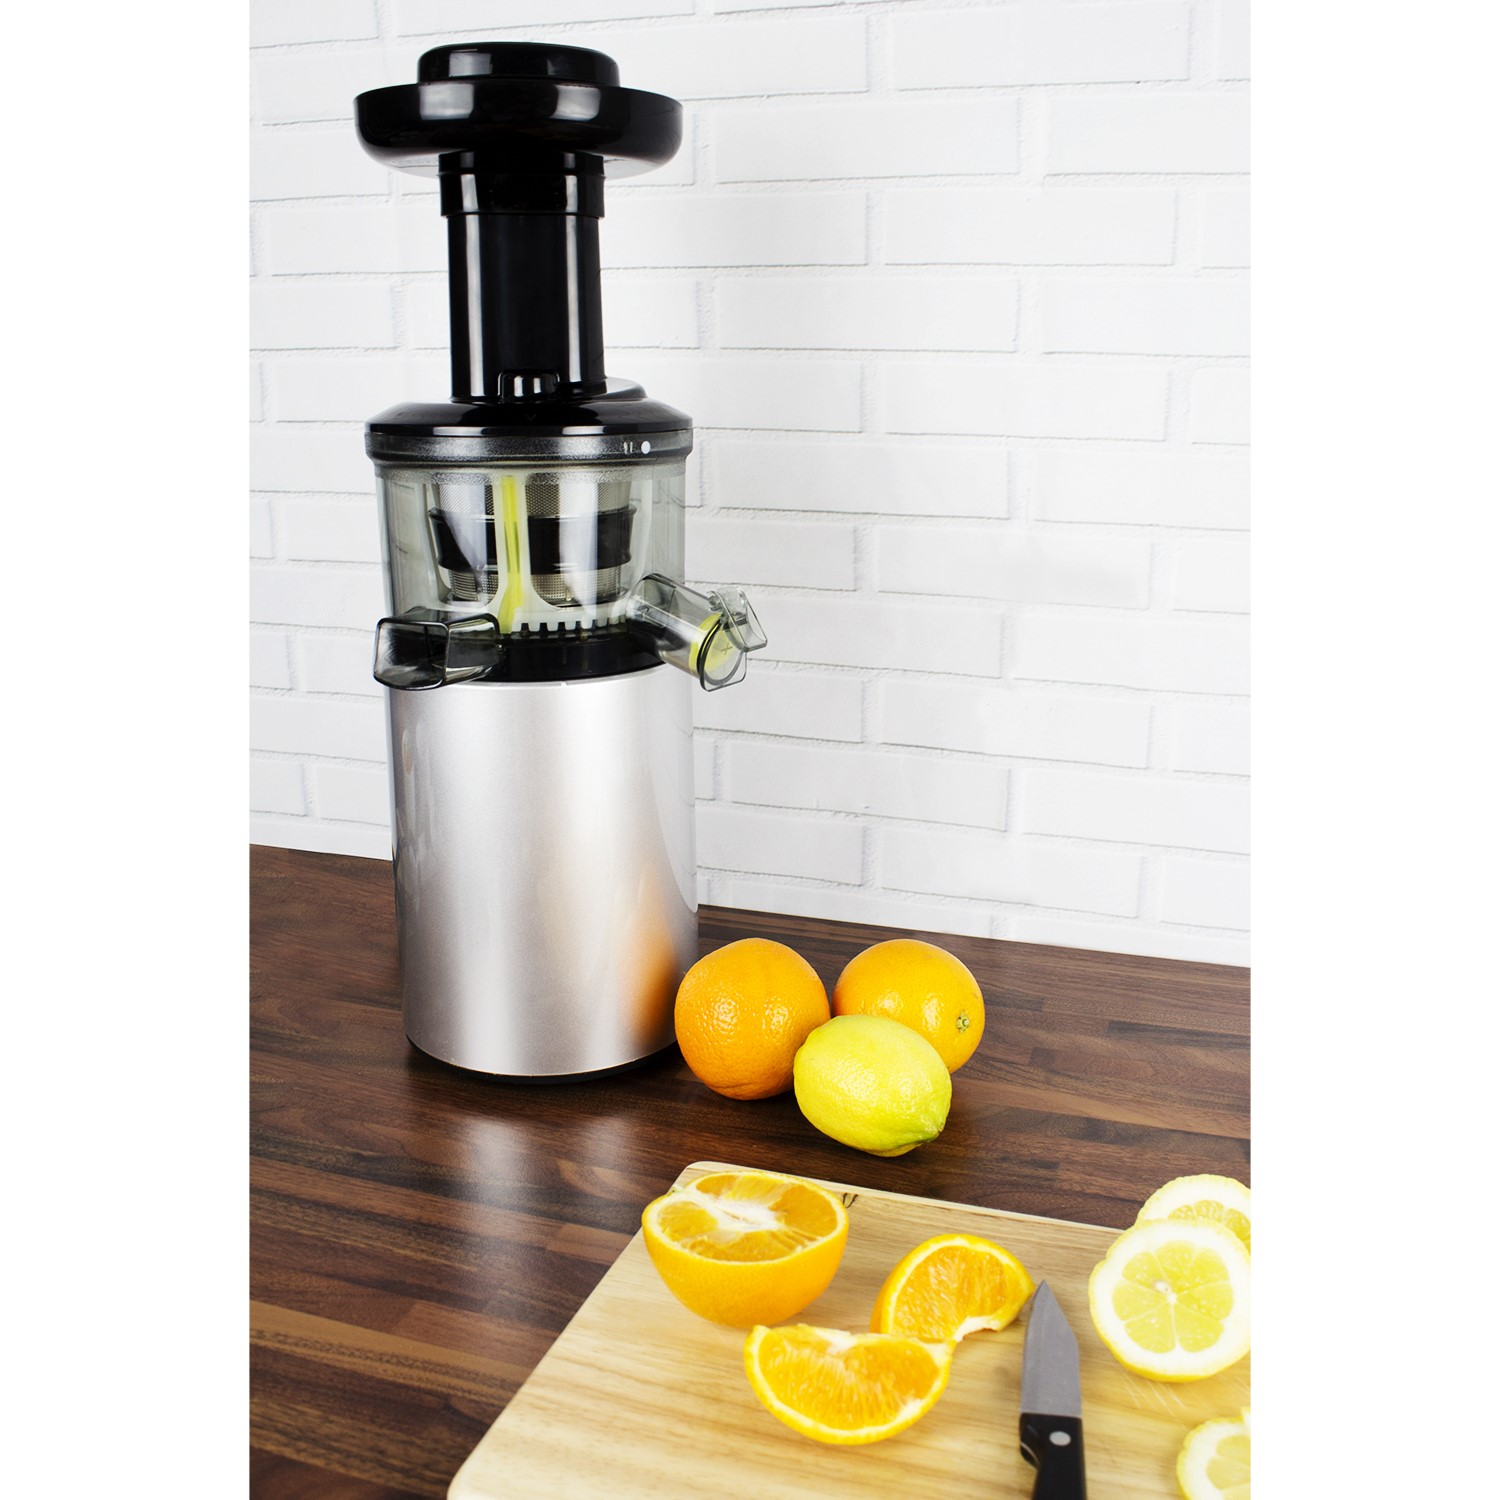 Electriq Horizontal Slow Juicer Hsl600 : ElectriQ Premium Slow Juicer great for cold pressed Greens Juices and Smoothies - BPA Free ...